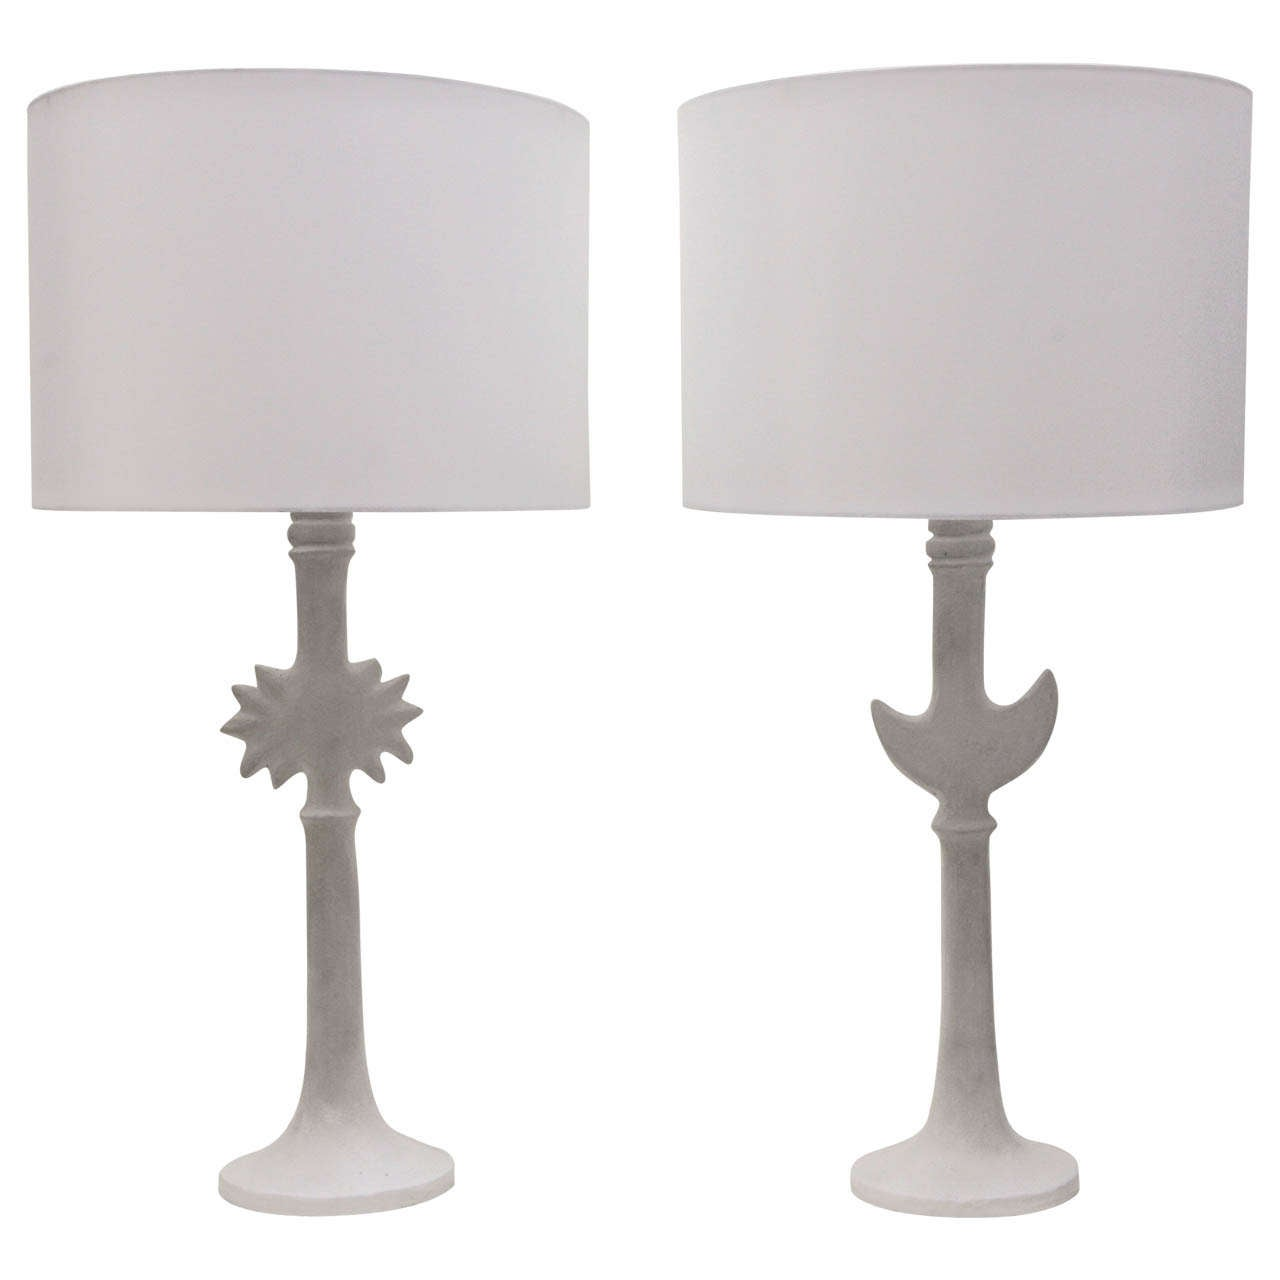 Pair Of Sirmos Sun U0026 Moon Table Lamps After Diego Giacometti 1